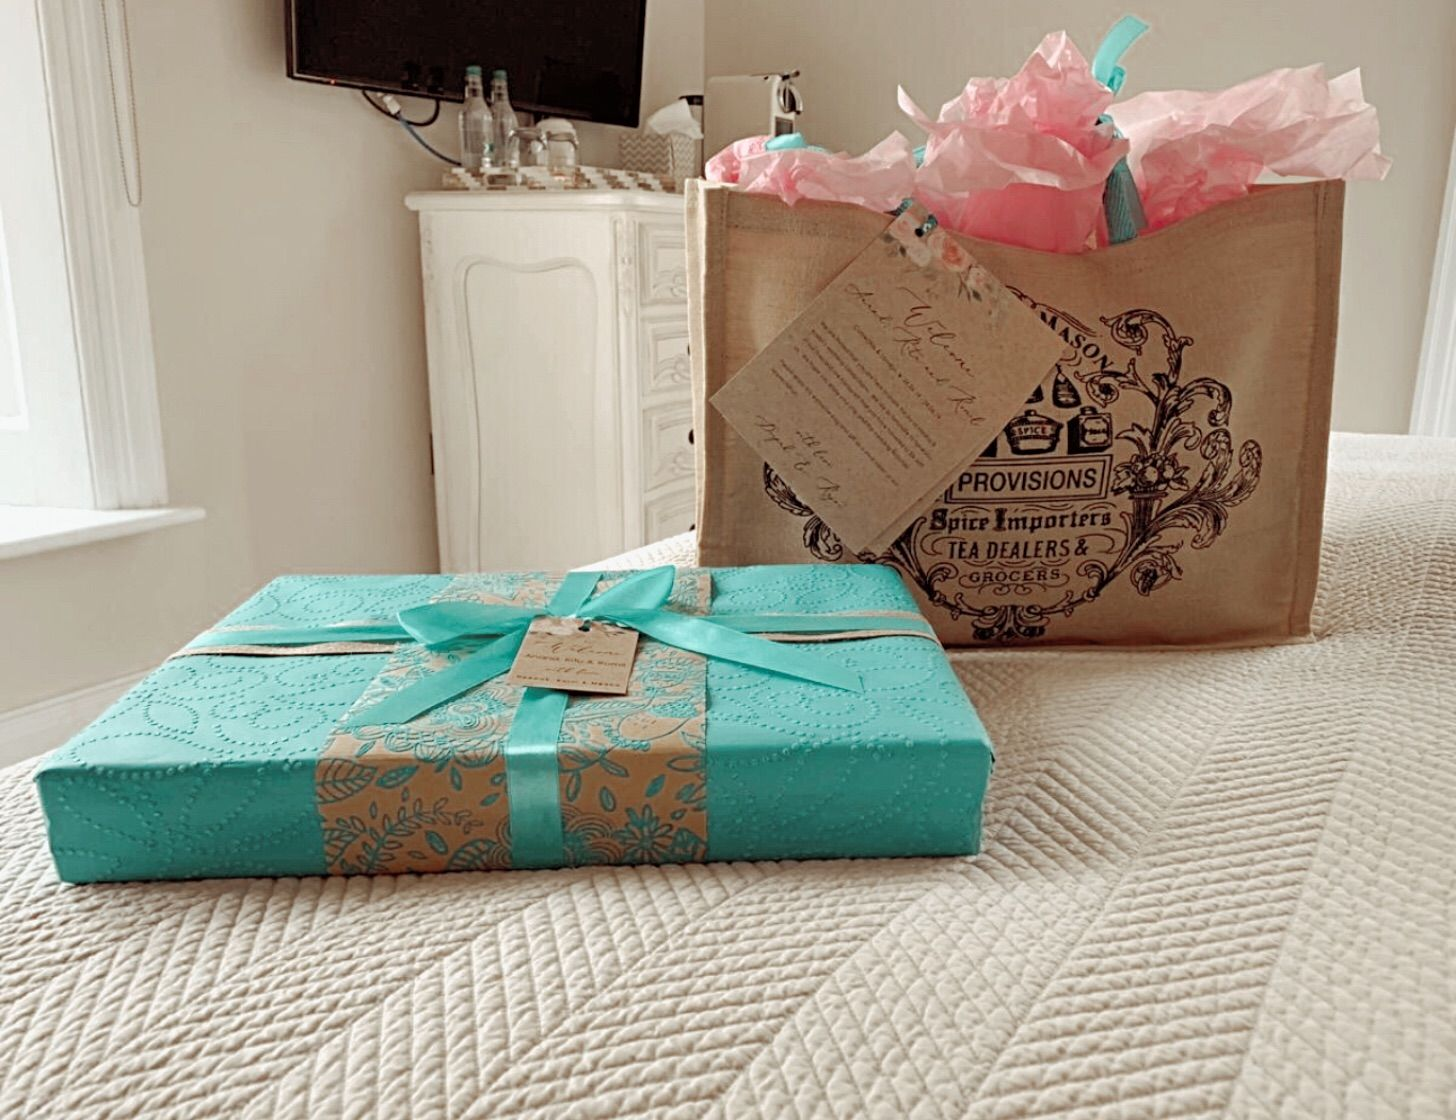 present and gift hamper on bed